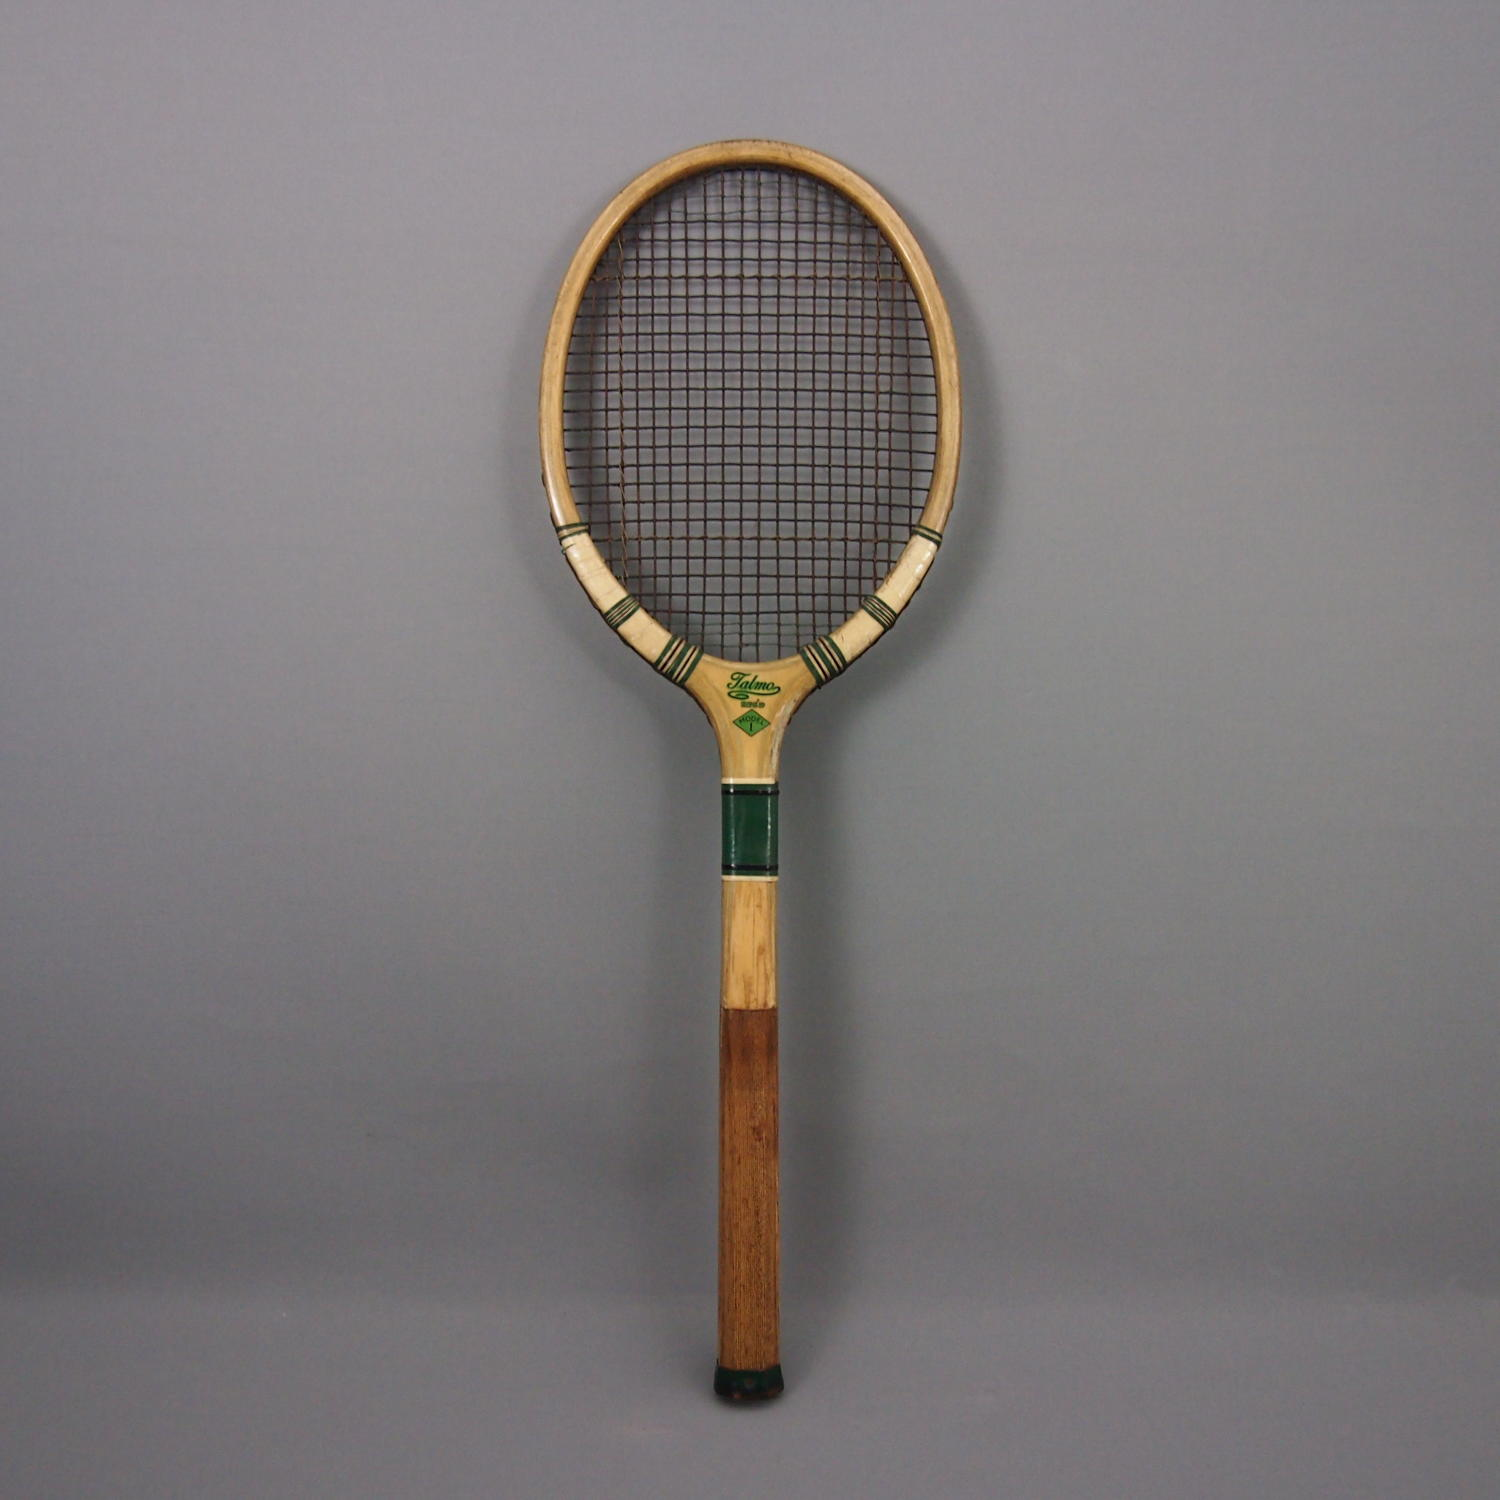 1940s Wood Framed Tennis Racket